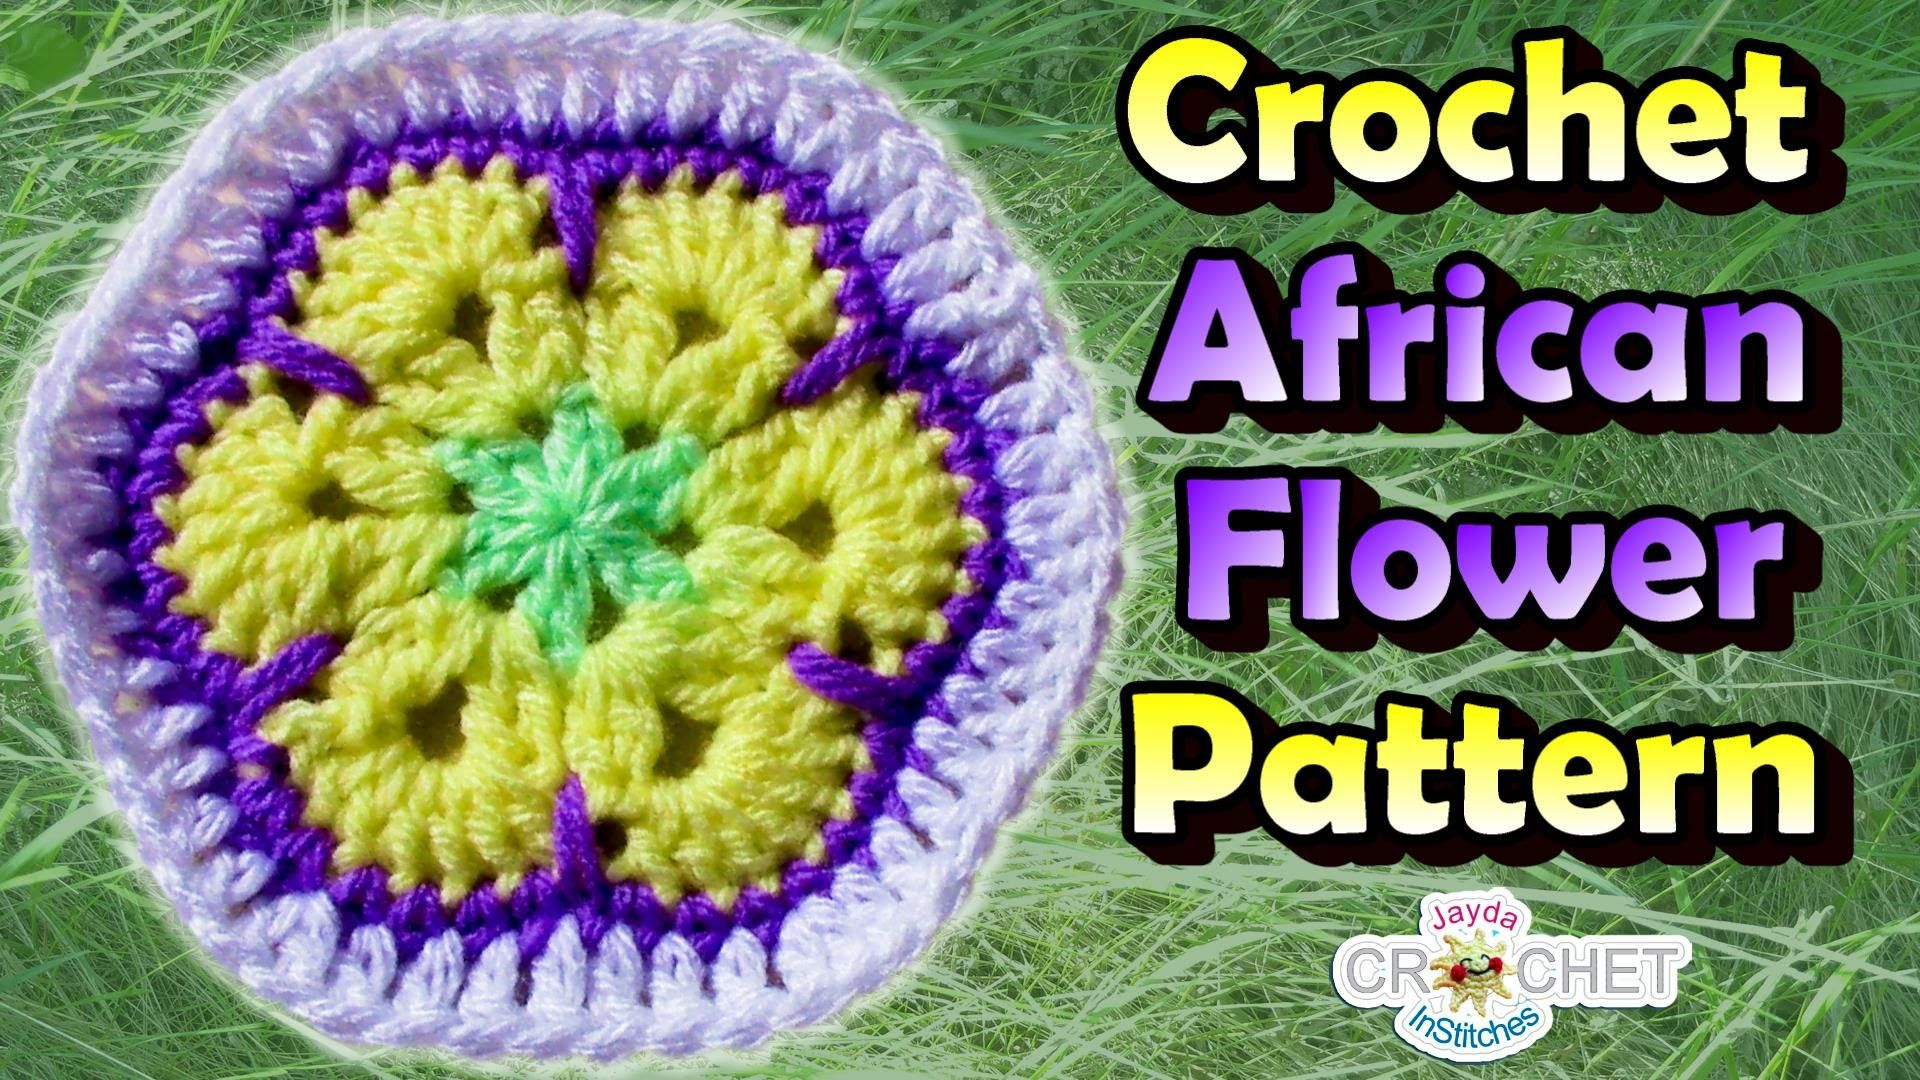 The Beautiful African Flower Pattern Looks Intimidating But Its Not